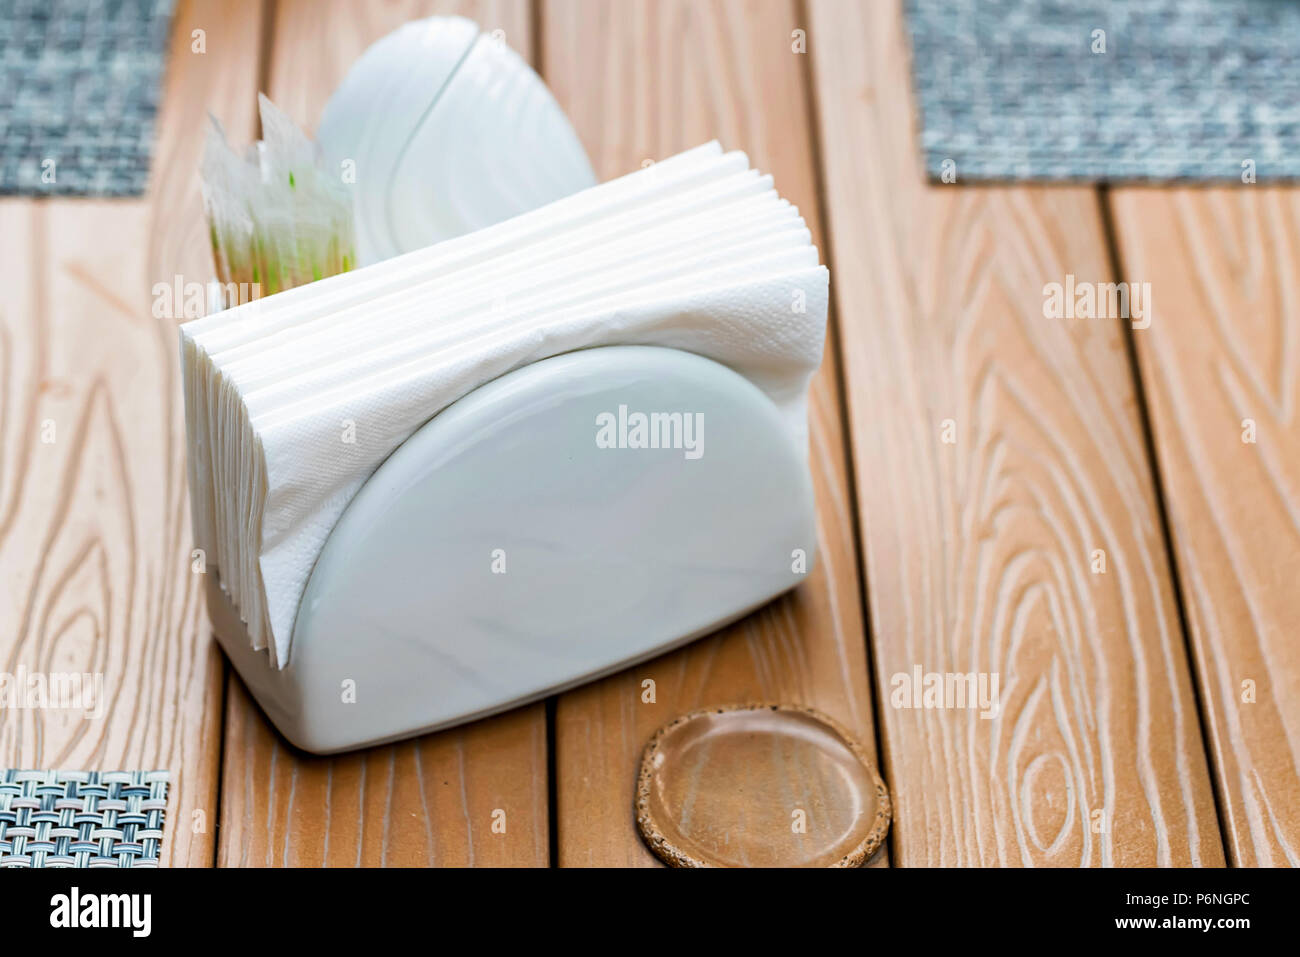 White Napkin Holder On Restaurant Table Stock Photo Alamy